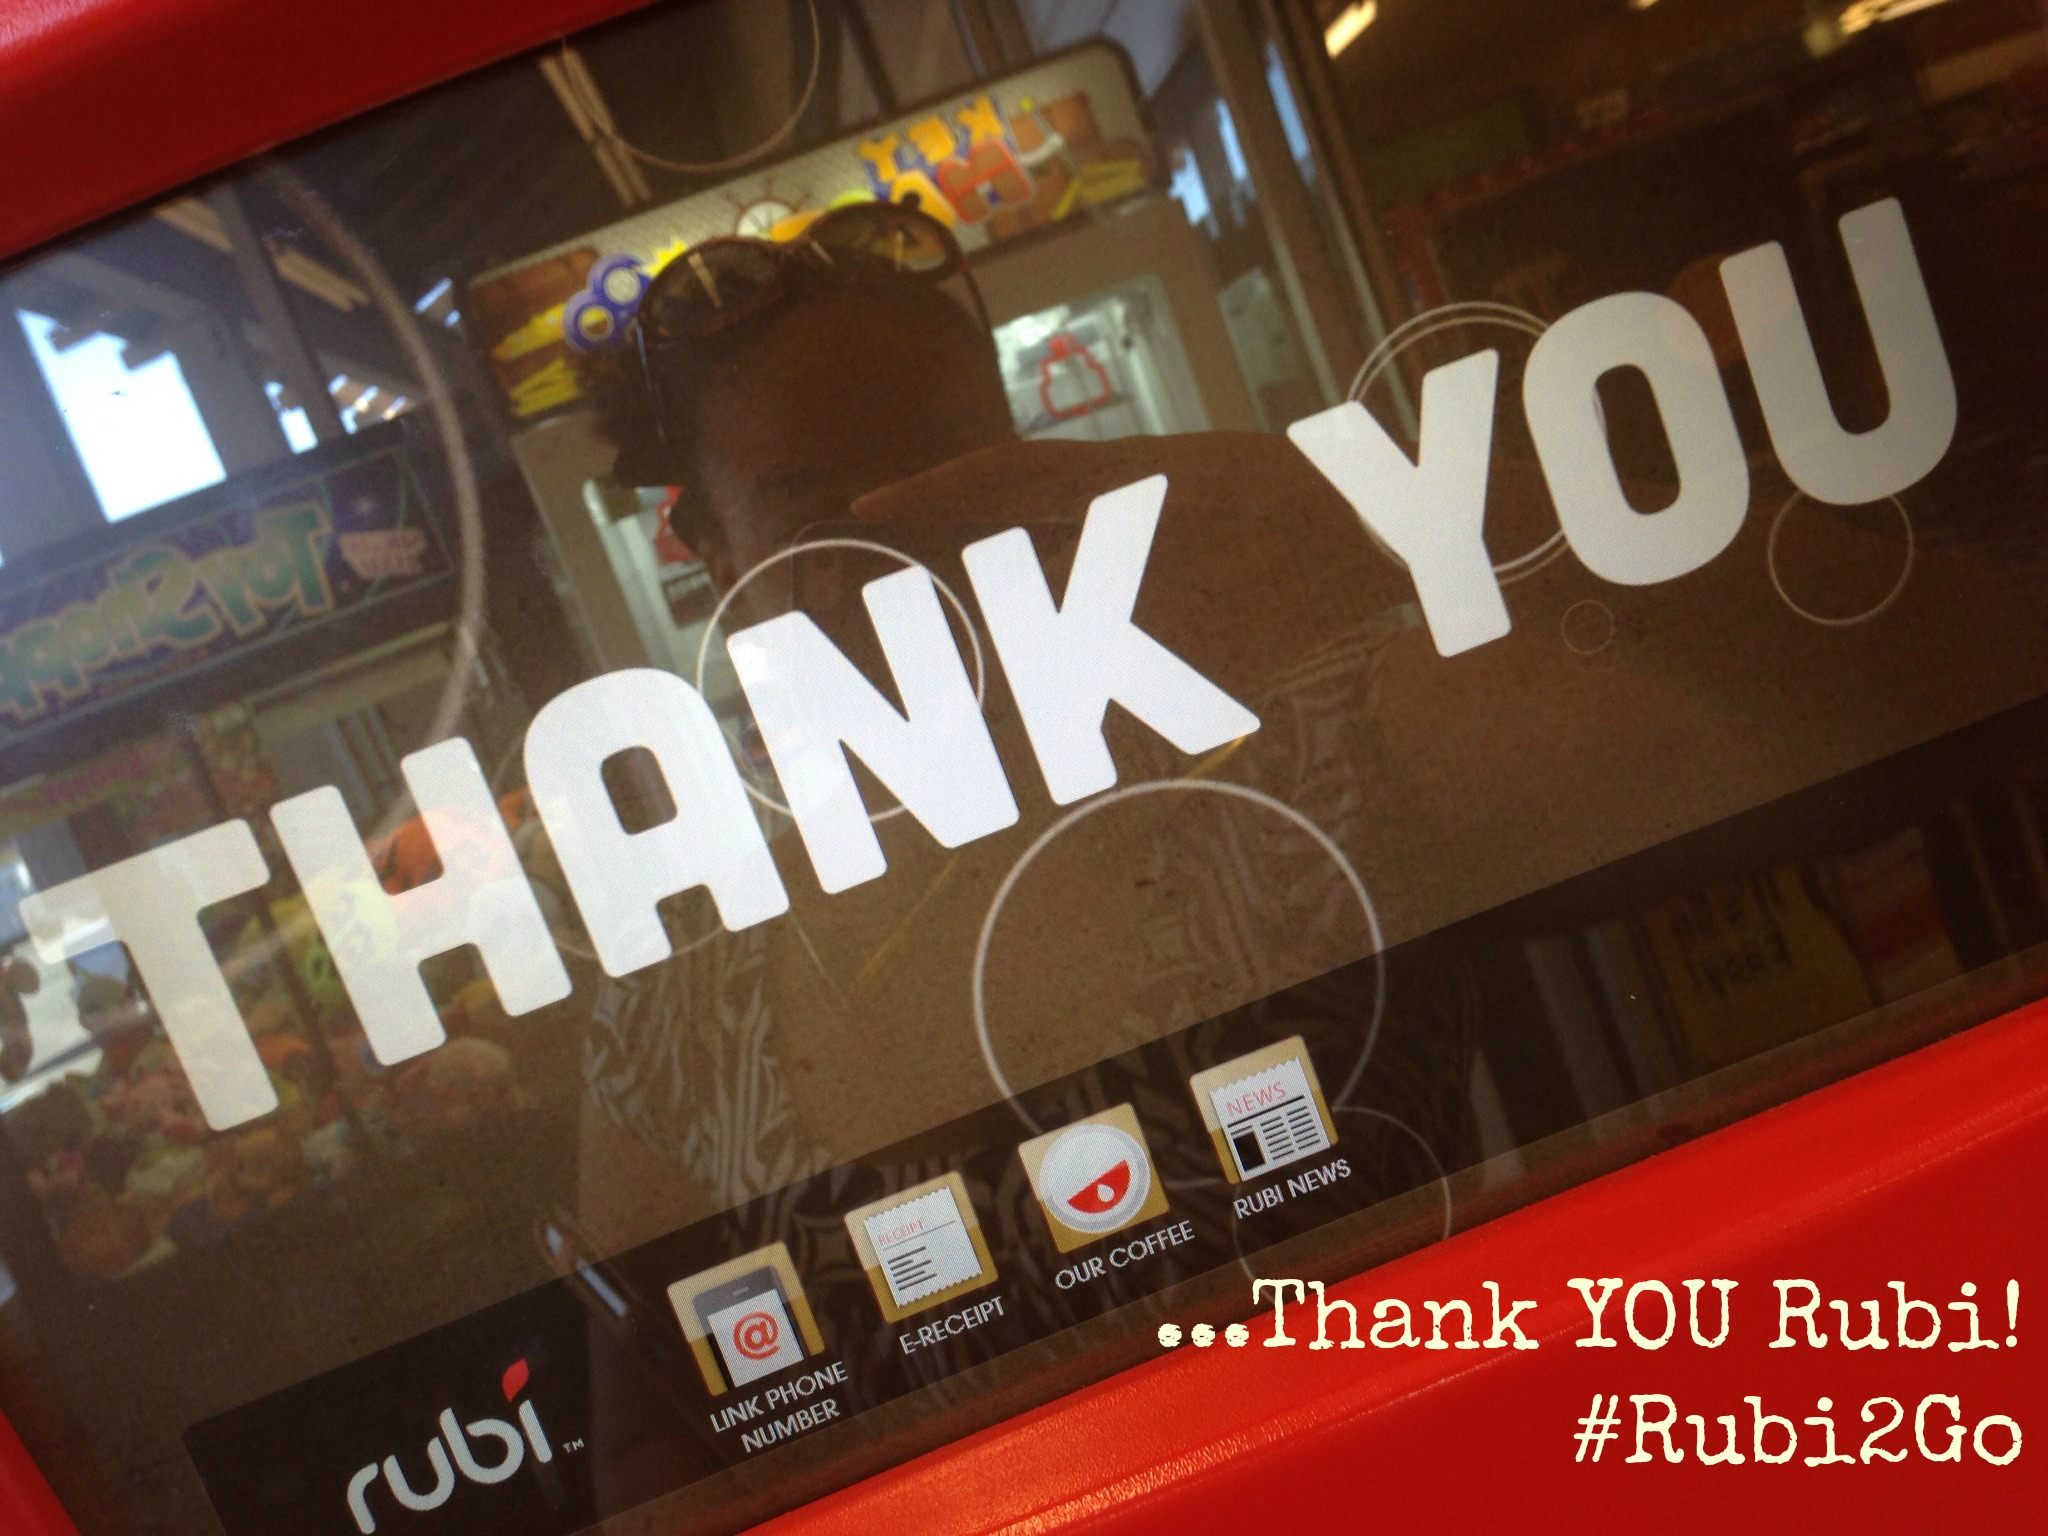 Rubi Kiosk Thank You